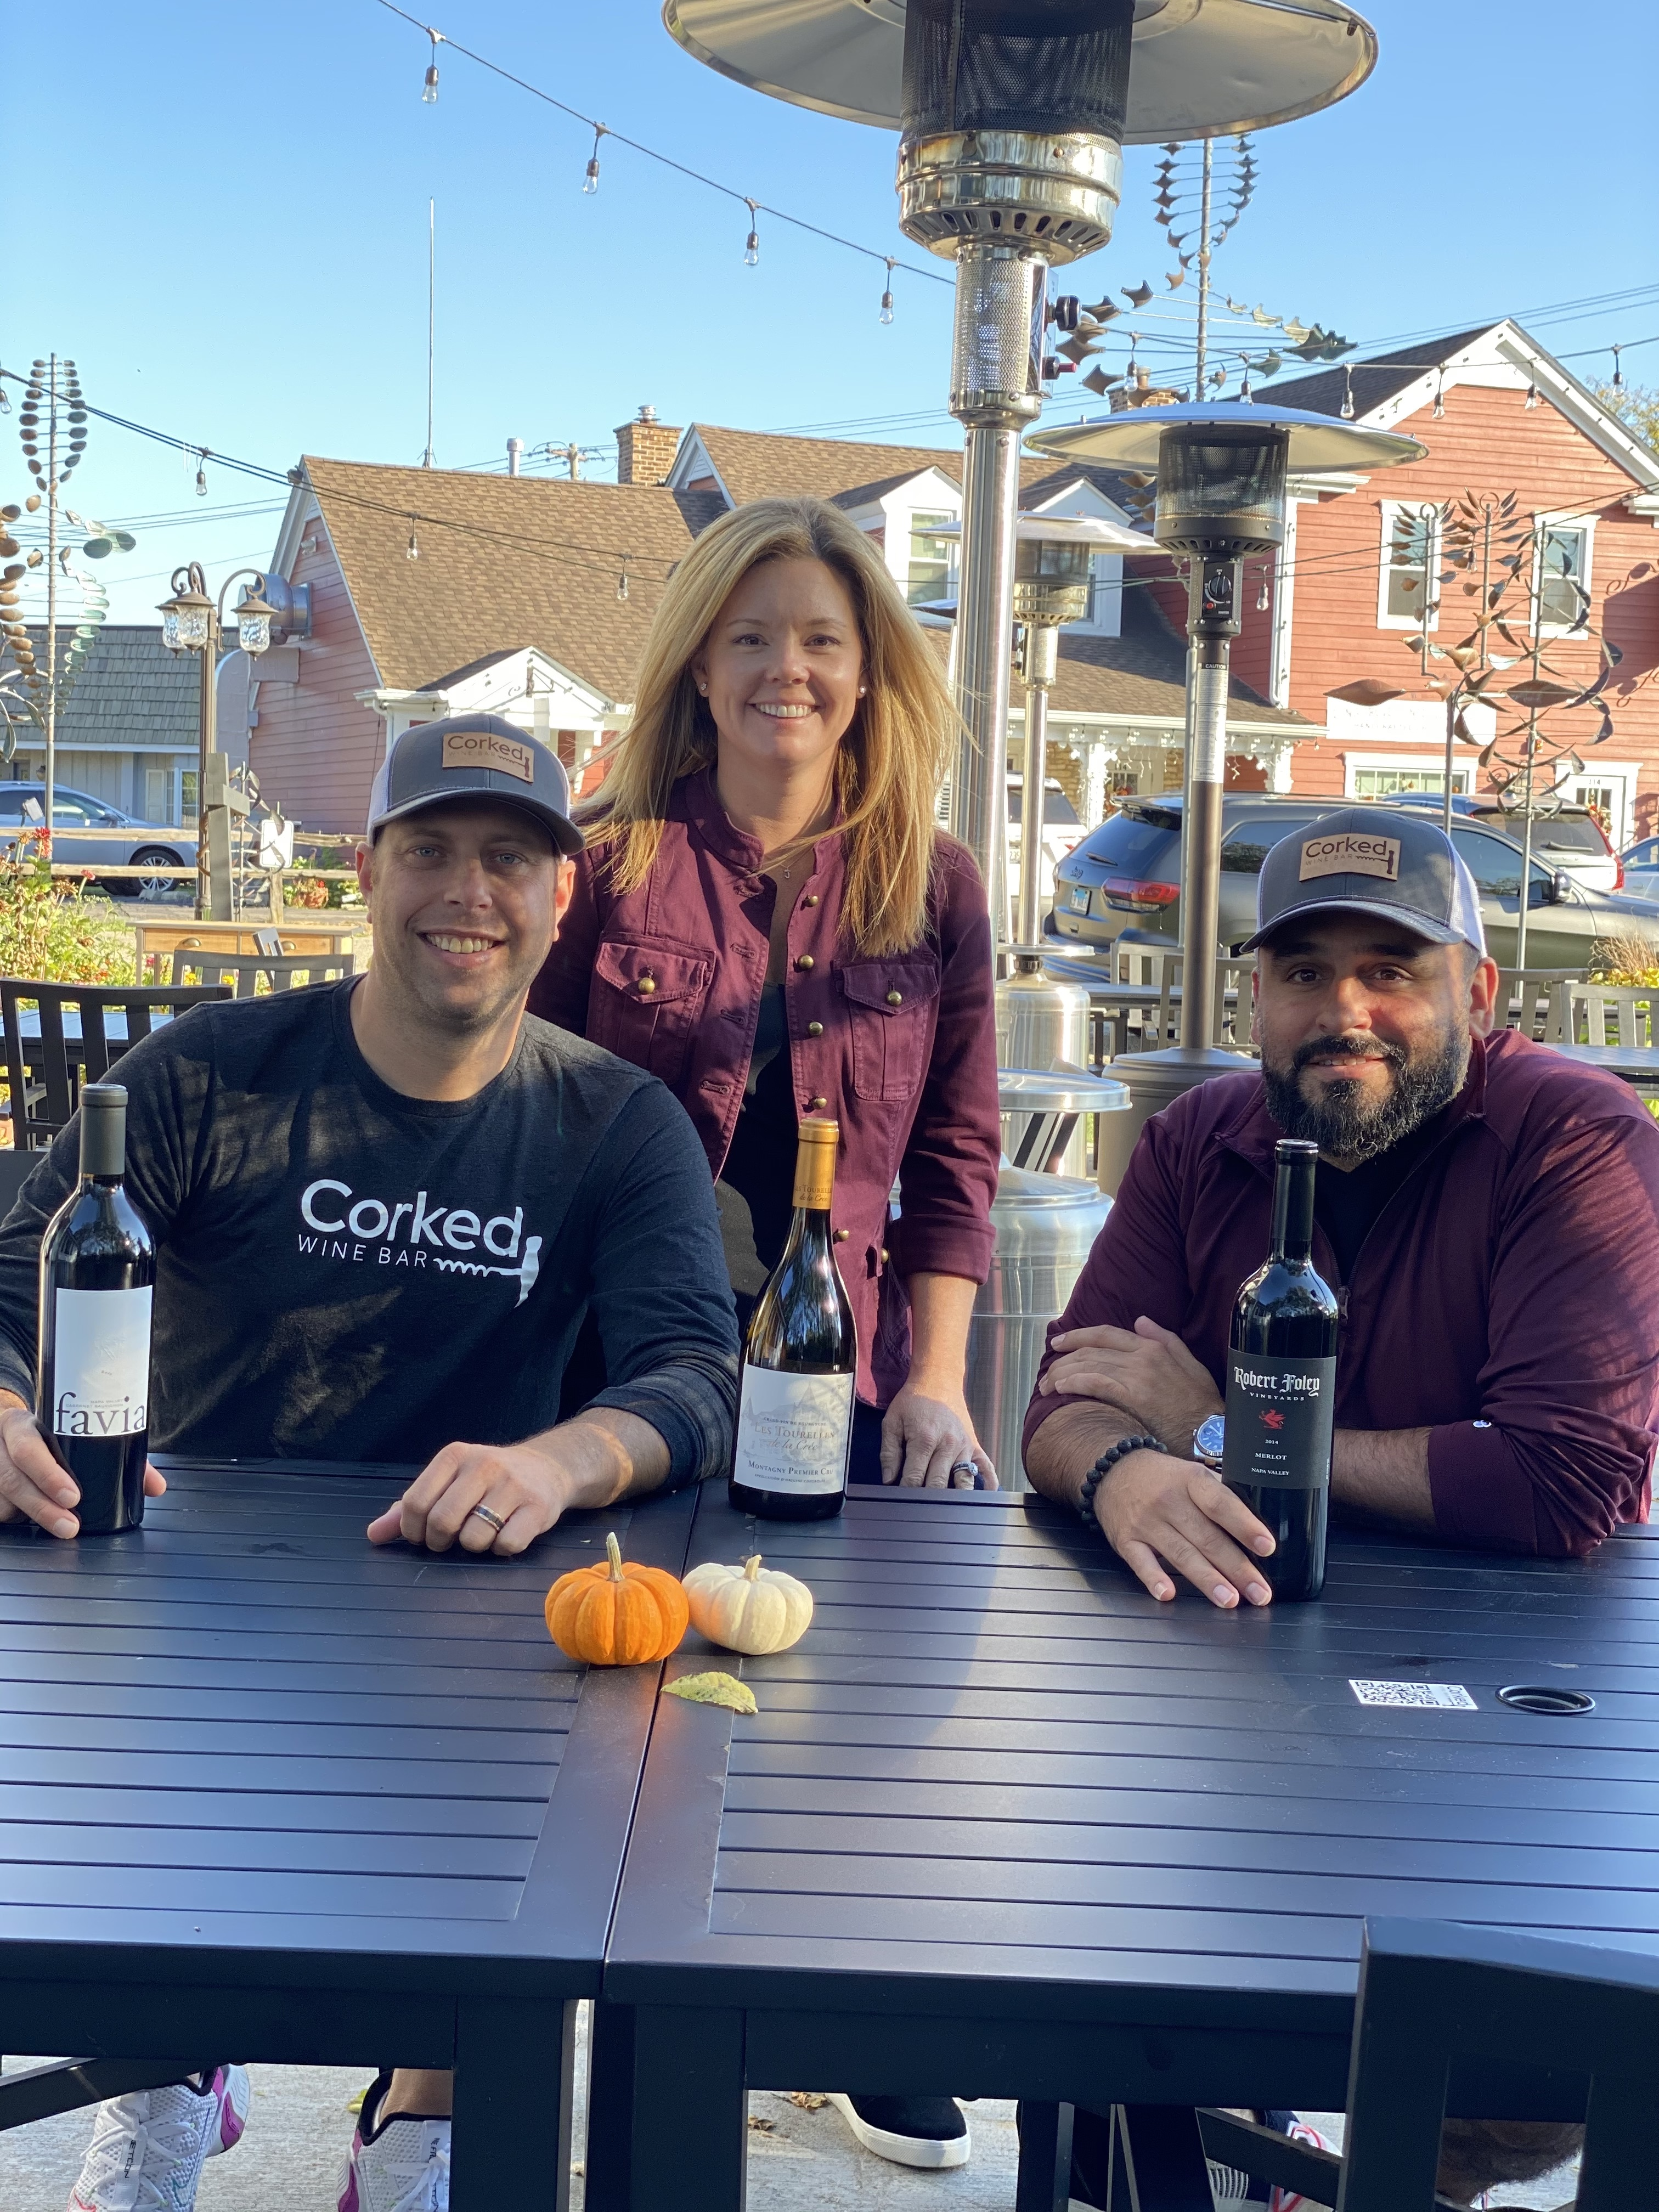 Corked Owners: Ben & JJ Niernberg along with Greg Poulos